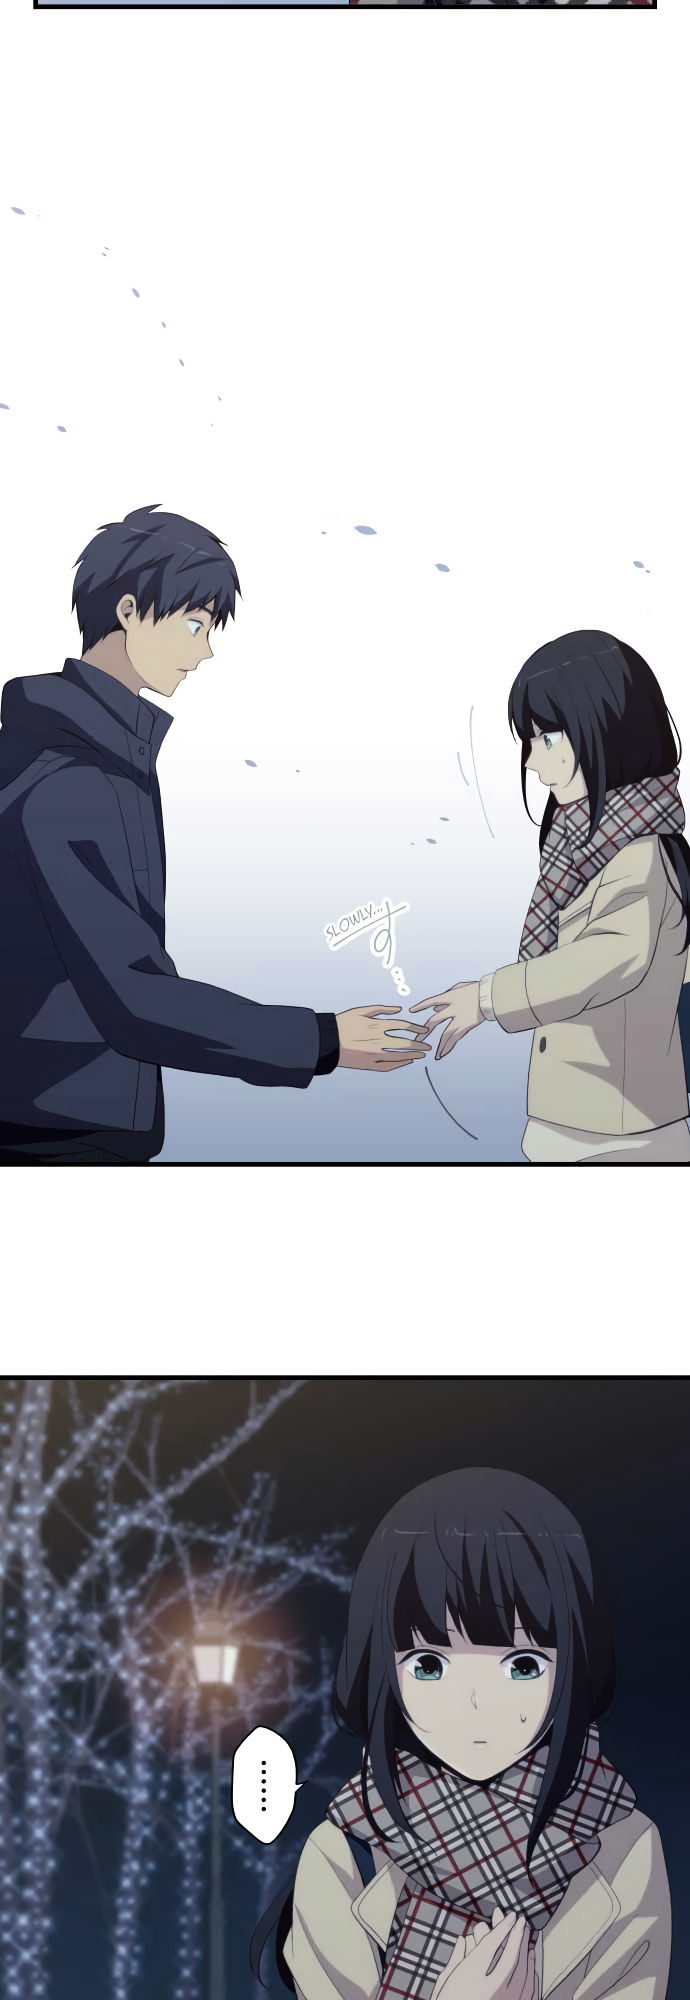 ReLIFE Chapter 197  Online Free Manga Read Image 16